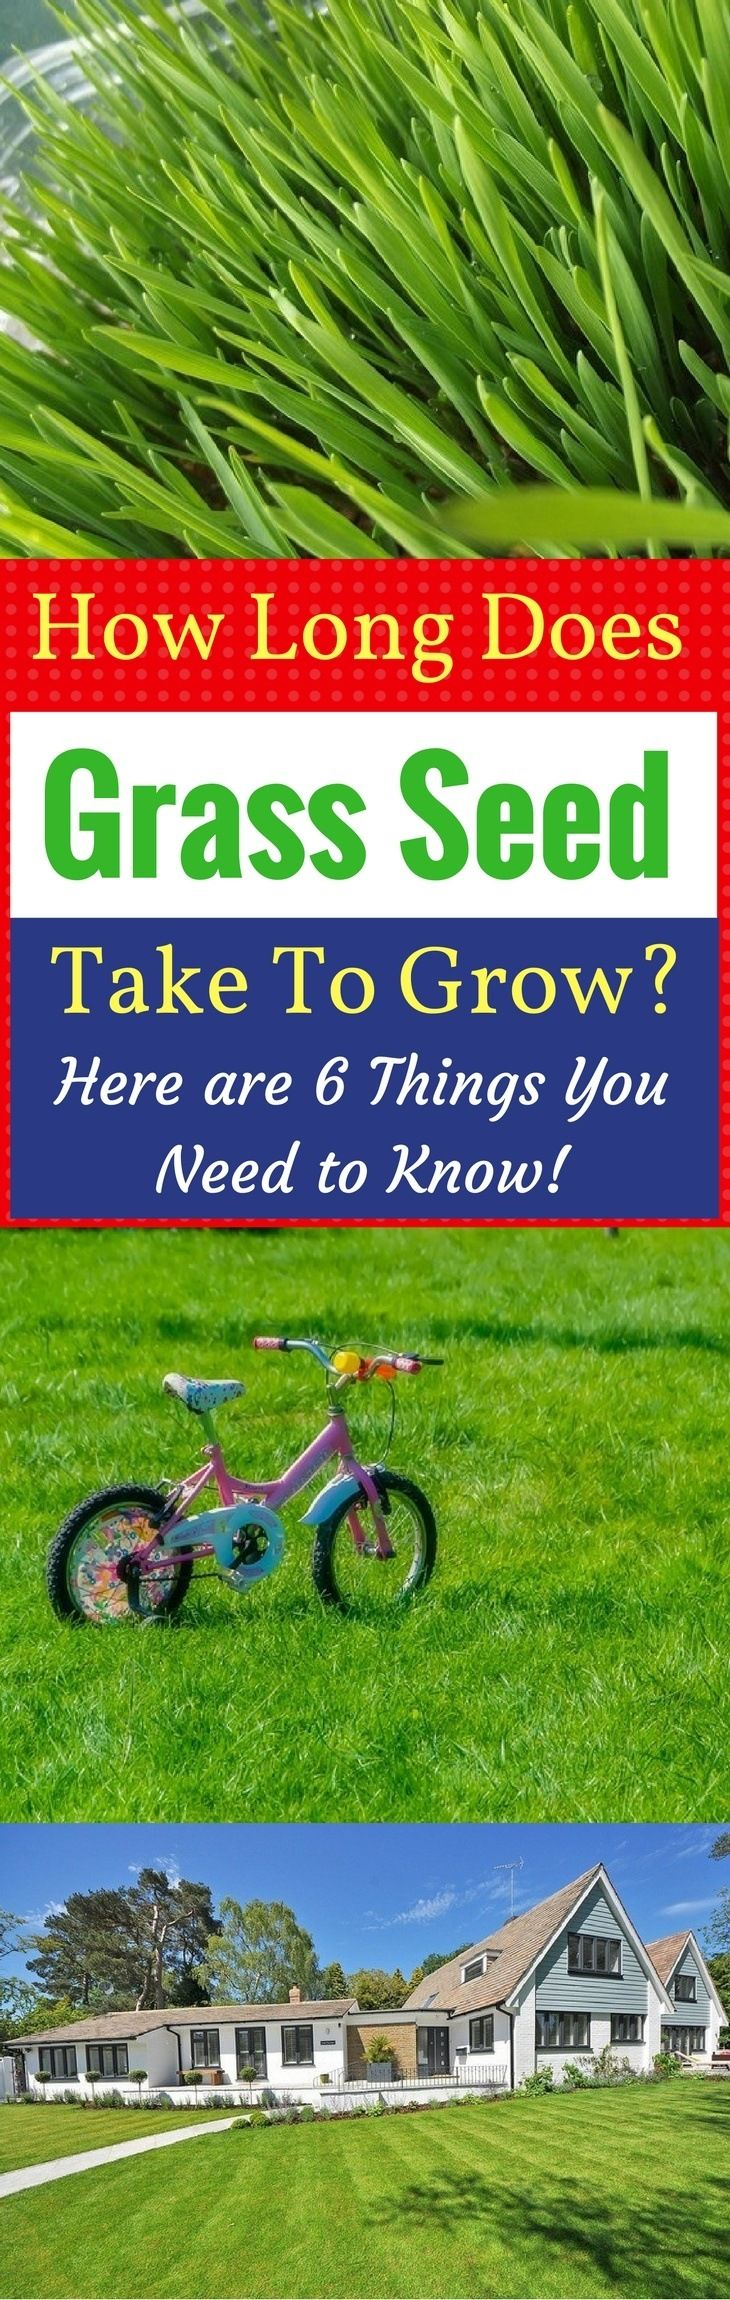 Ever Wonder How Long Does Grass Seed Take To Grow Here Are 6 Things You Need To Know Grass Seed Grass Seeding Lawn